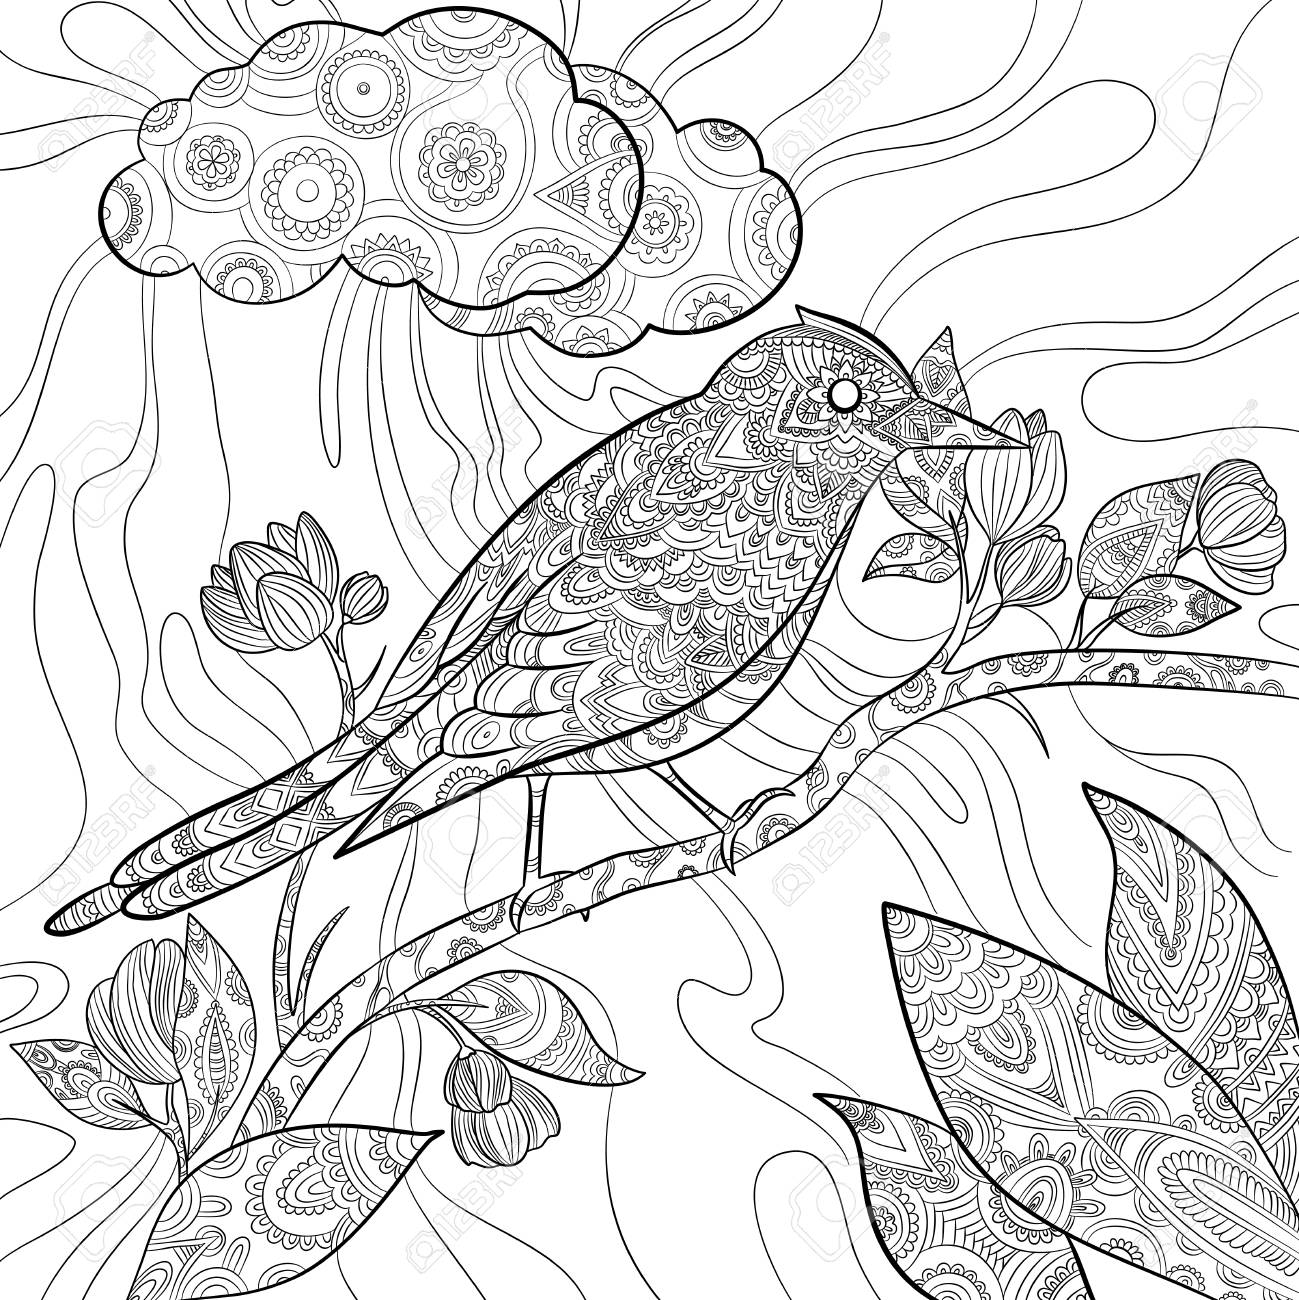 Coloring pages bird. Wild flying animal in sitting on branch..